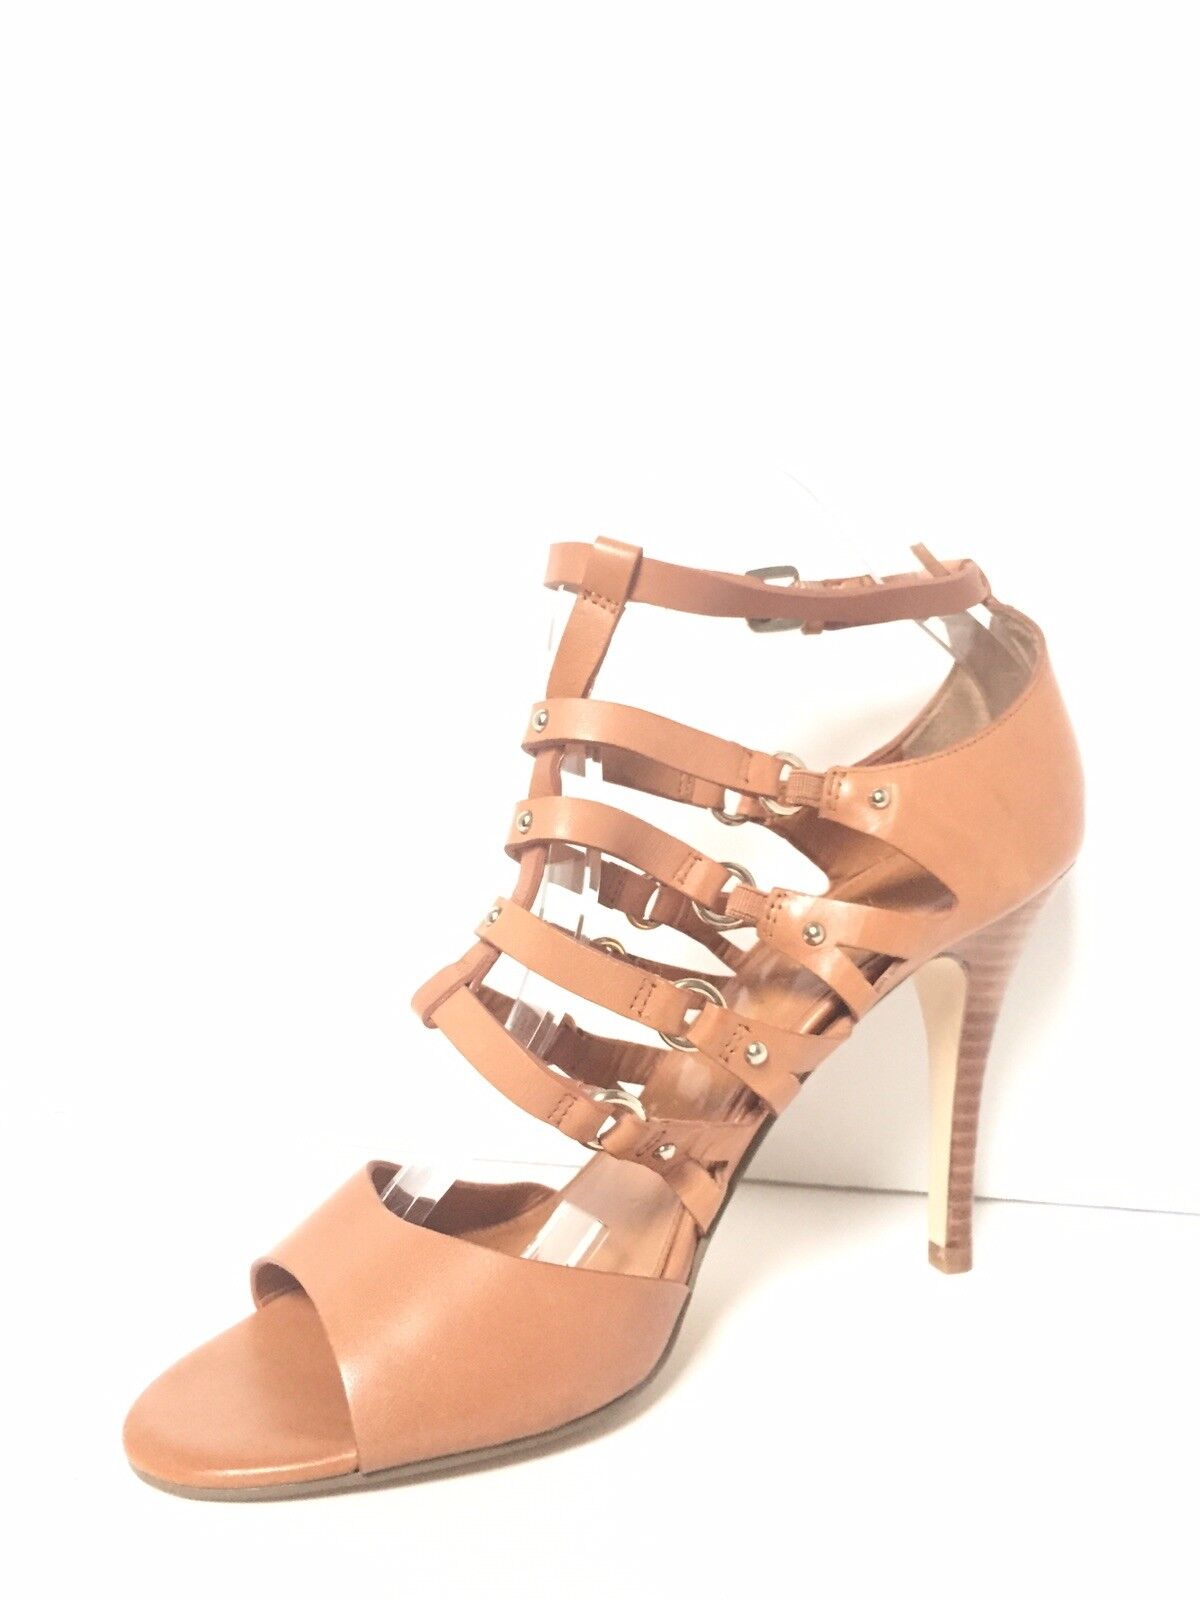 IVANKA TRUMP braun Leather Leather Leather Strappy Stiletto Sandal 9.5 BRAND NEW a68bb9